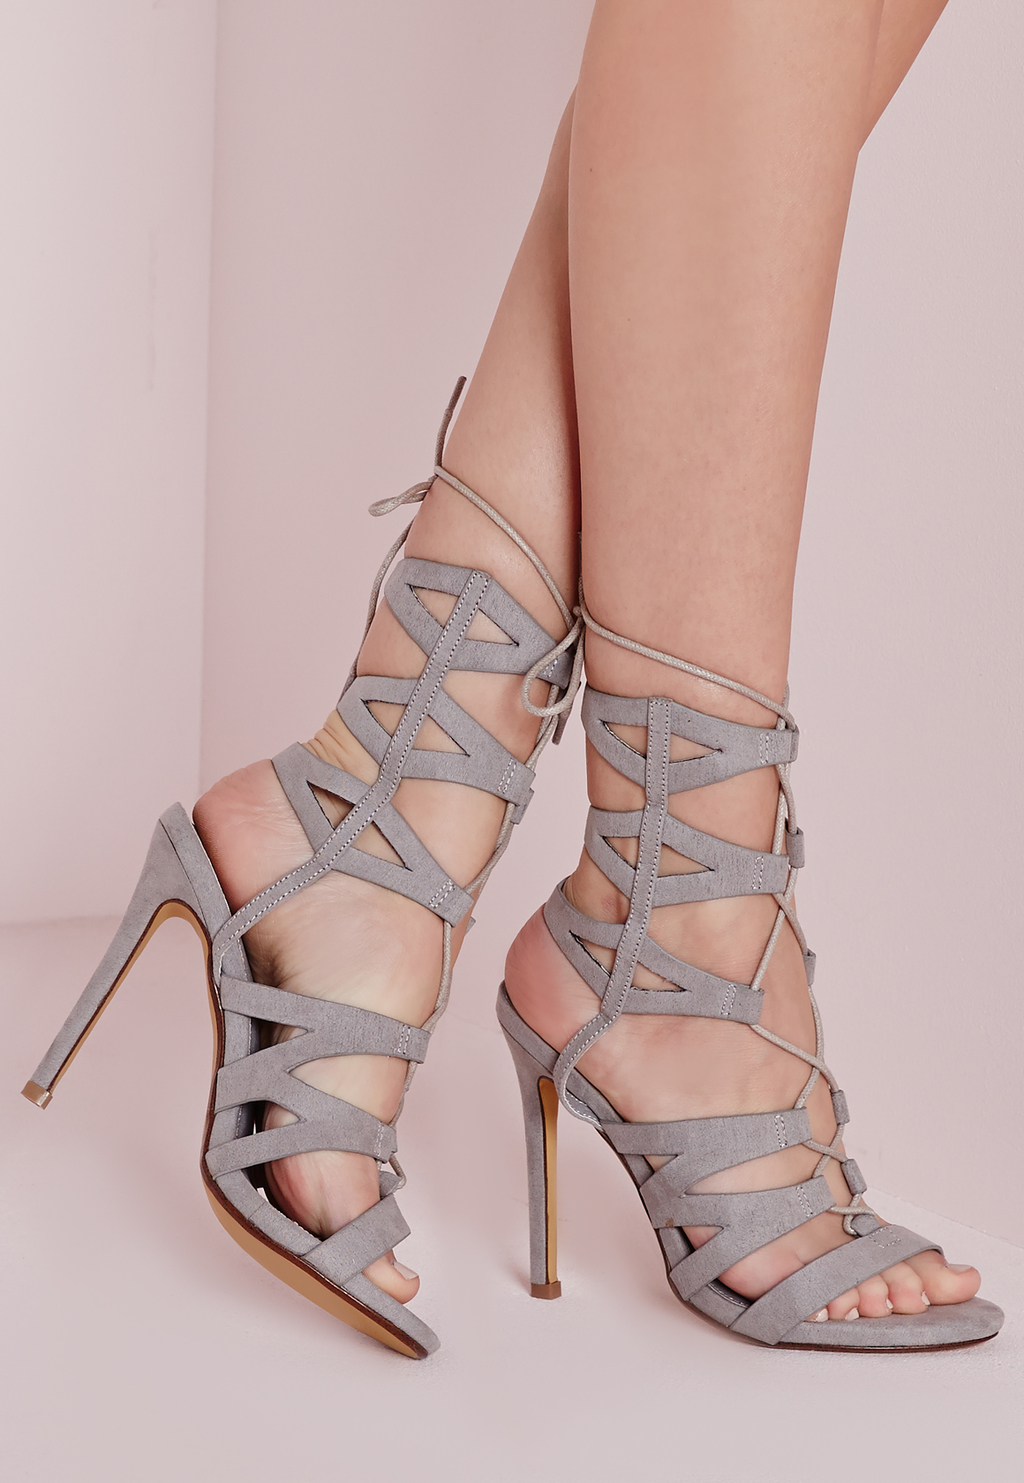 Laser Cut Mid Calf Heeled Sandals Grey, Grey - predominant colour: mid grey; occasions: evening, occasion; heel height: high; ankle detail: ankle tie; heel: stiletto; toe: open toe/peeptoe; style: strappy; finish: plain; pattern: plain; material: faux suede; season: s/s 2016; wardrobe: event